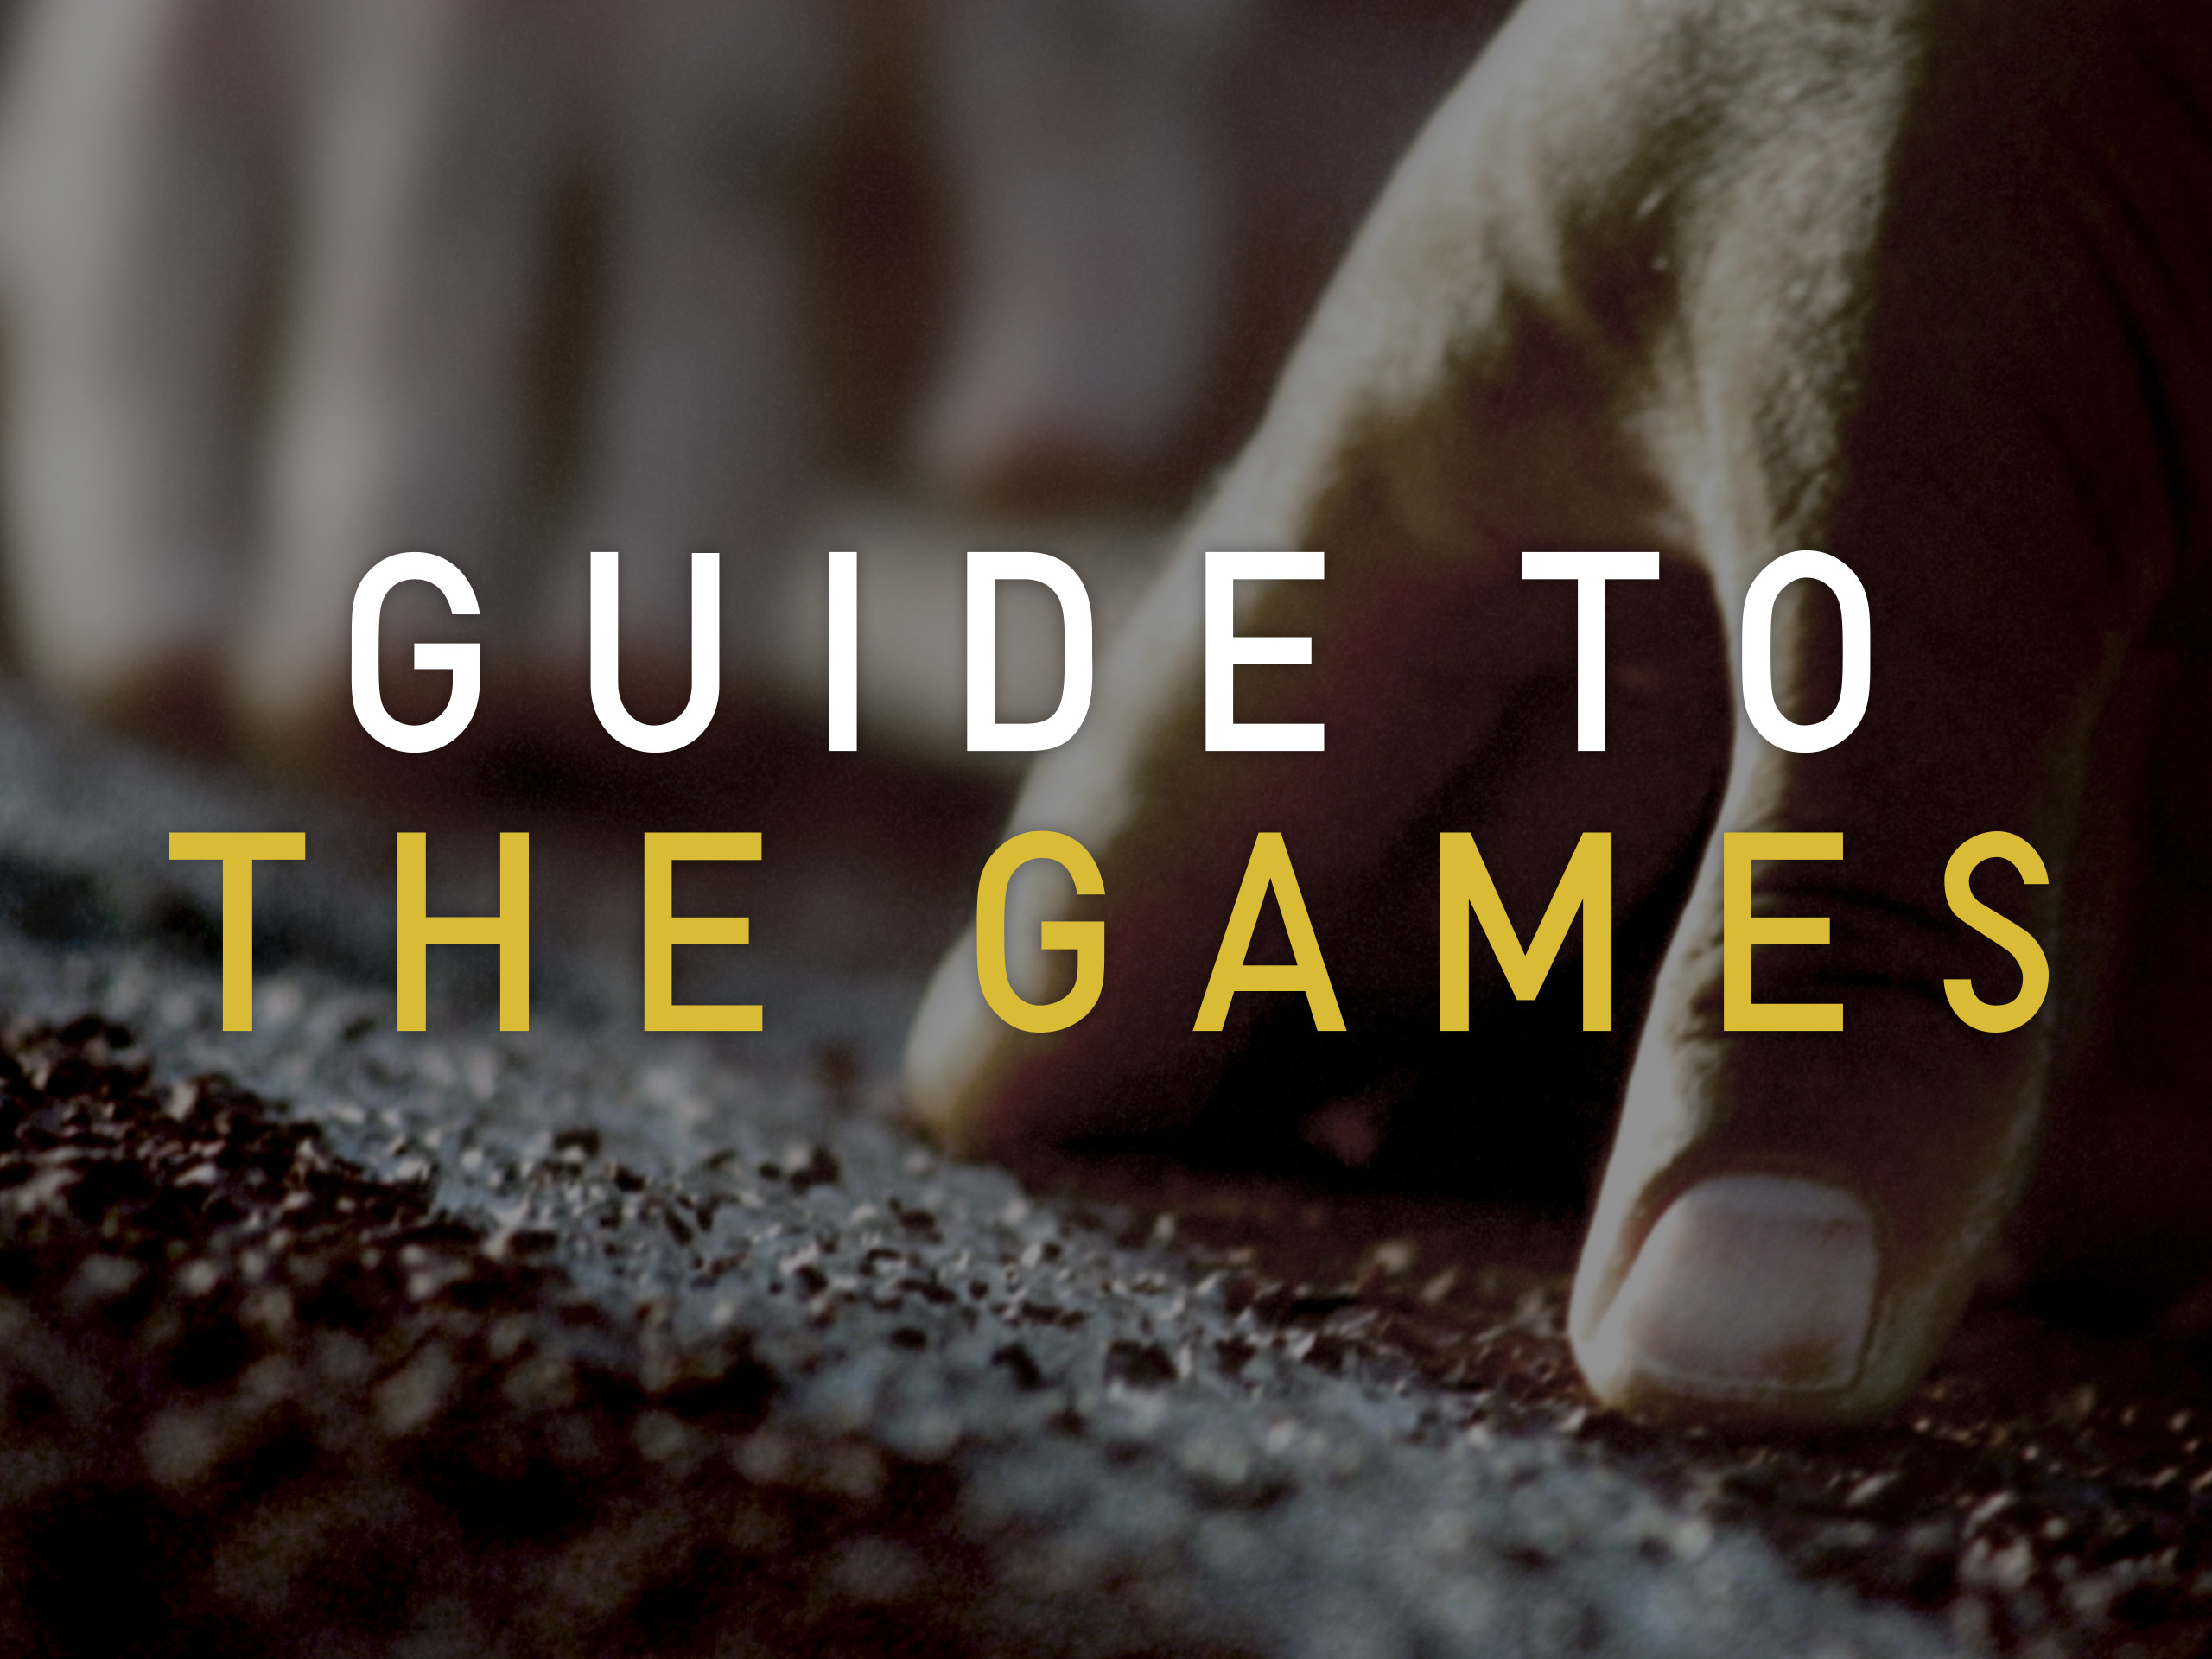 Guide to the games